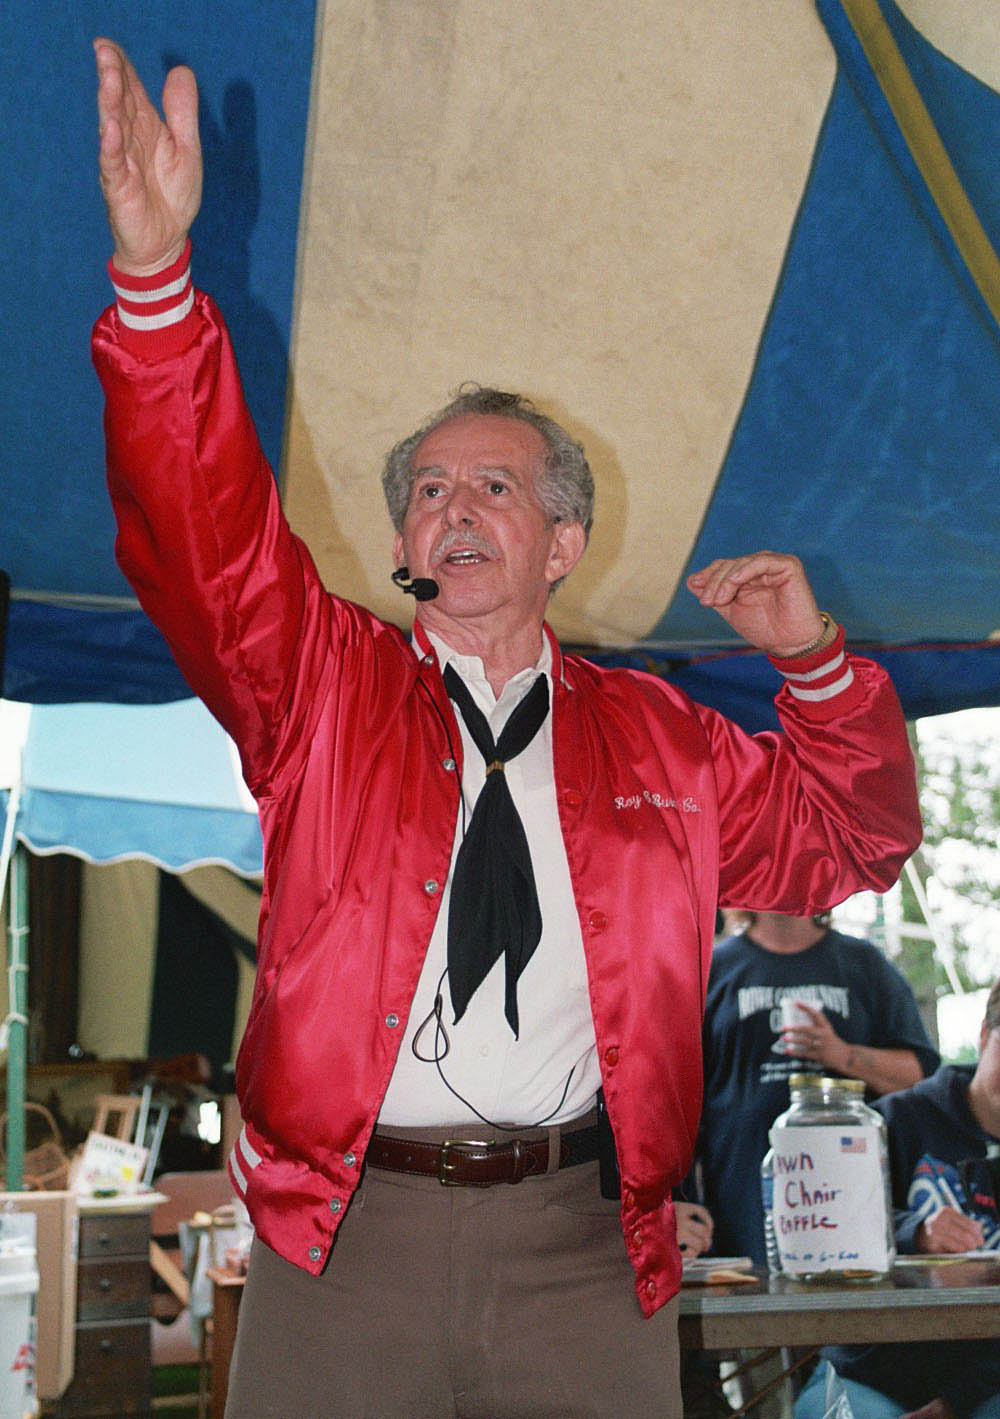 Roy Burdick, auctioneer. Photo by Maggie Holtzberg.